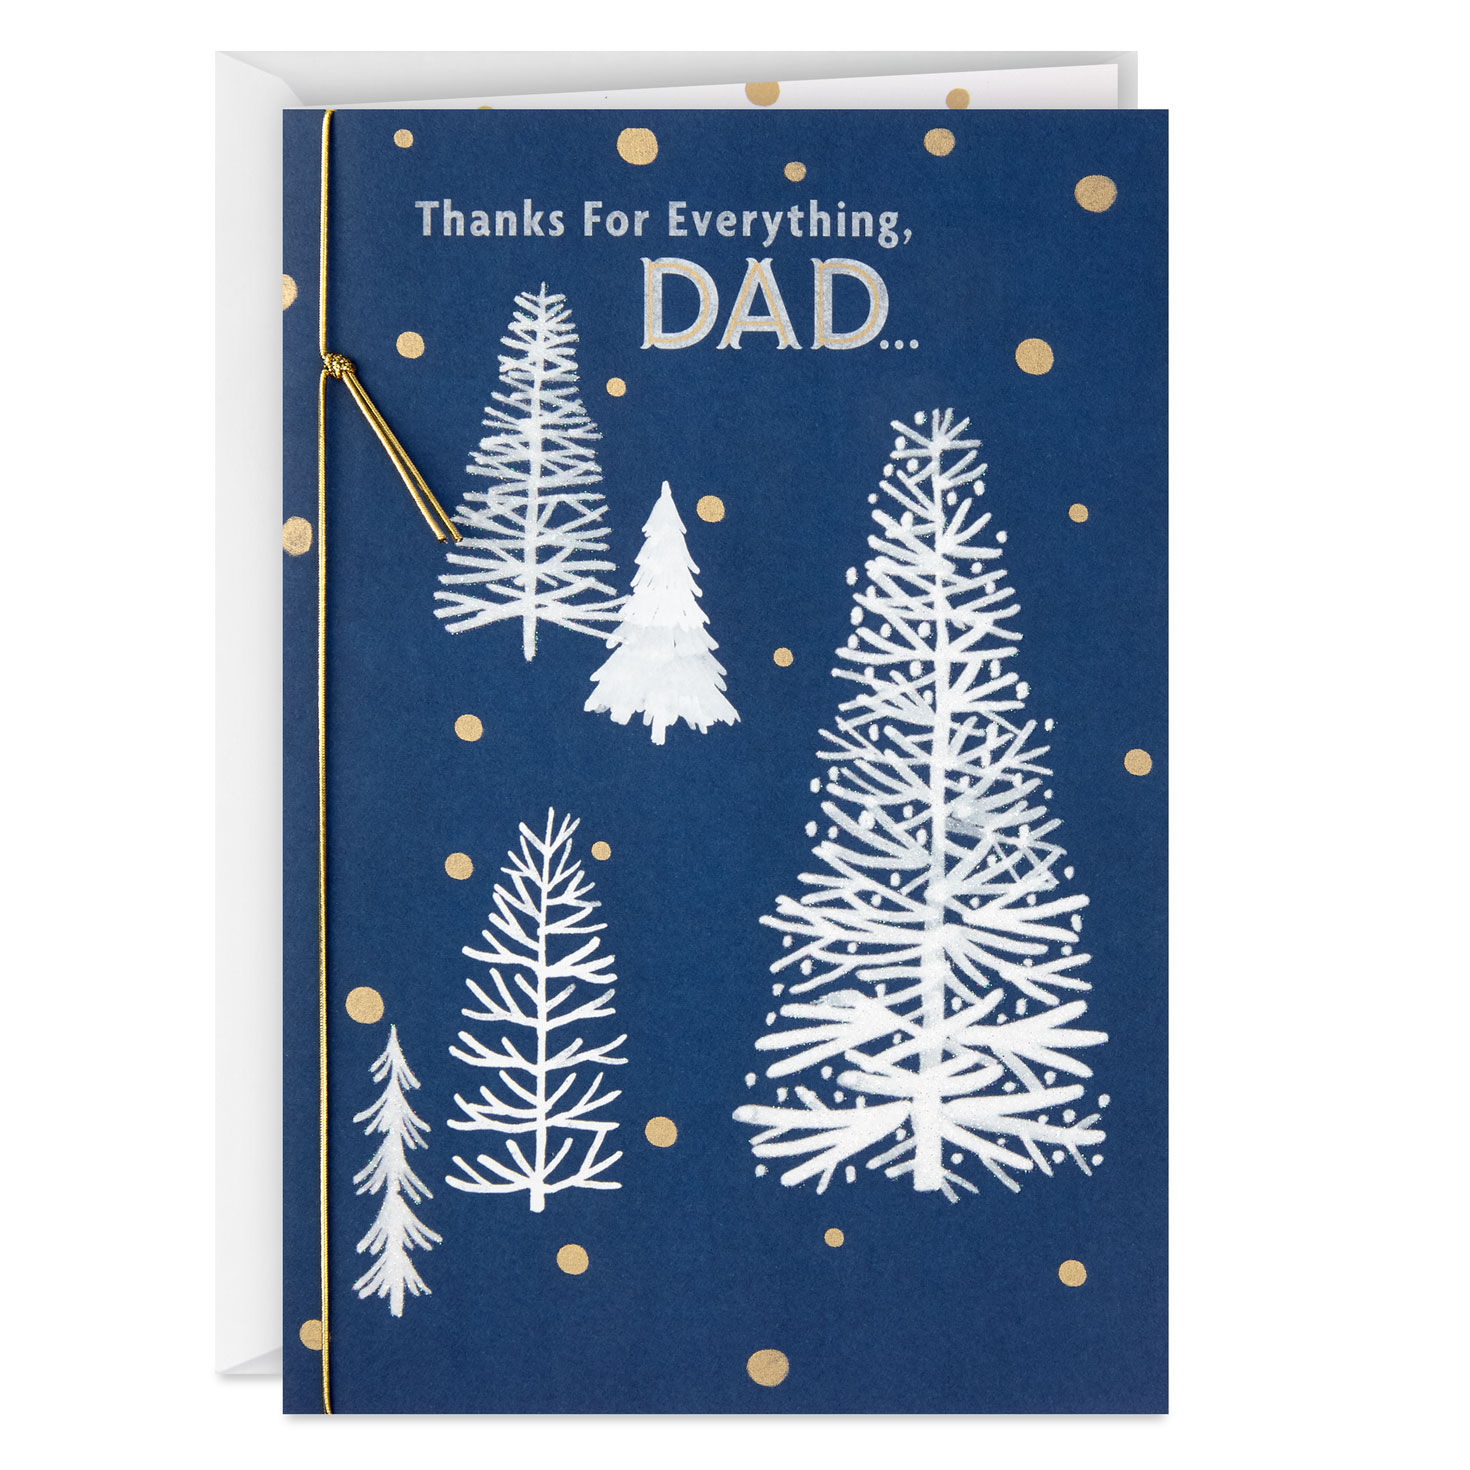 Thanks For Everything, Dad Christmas Card